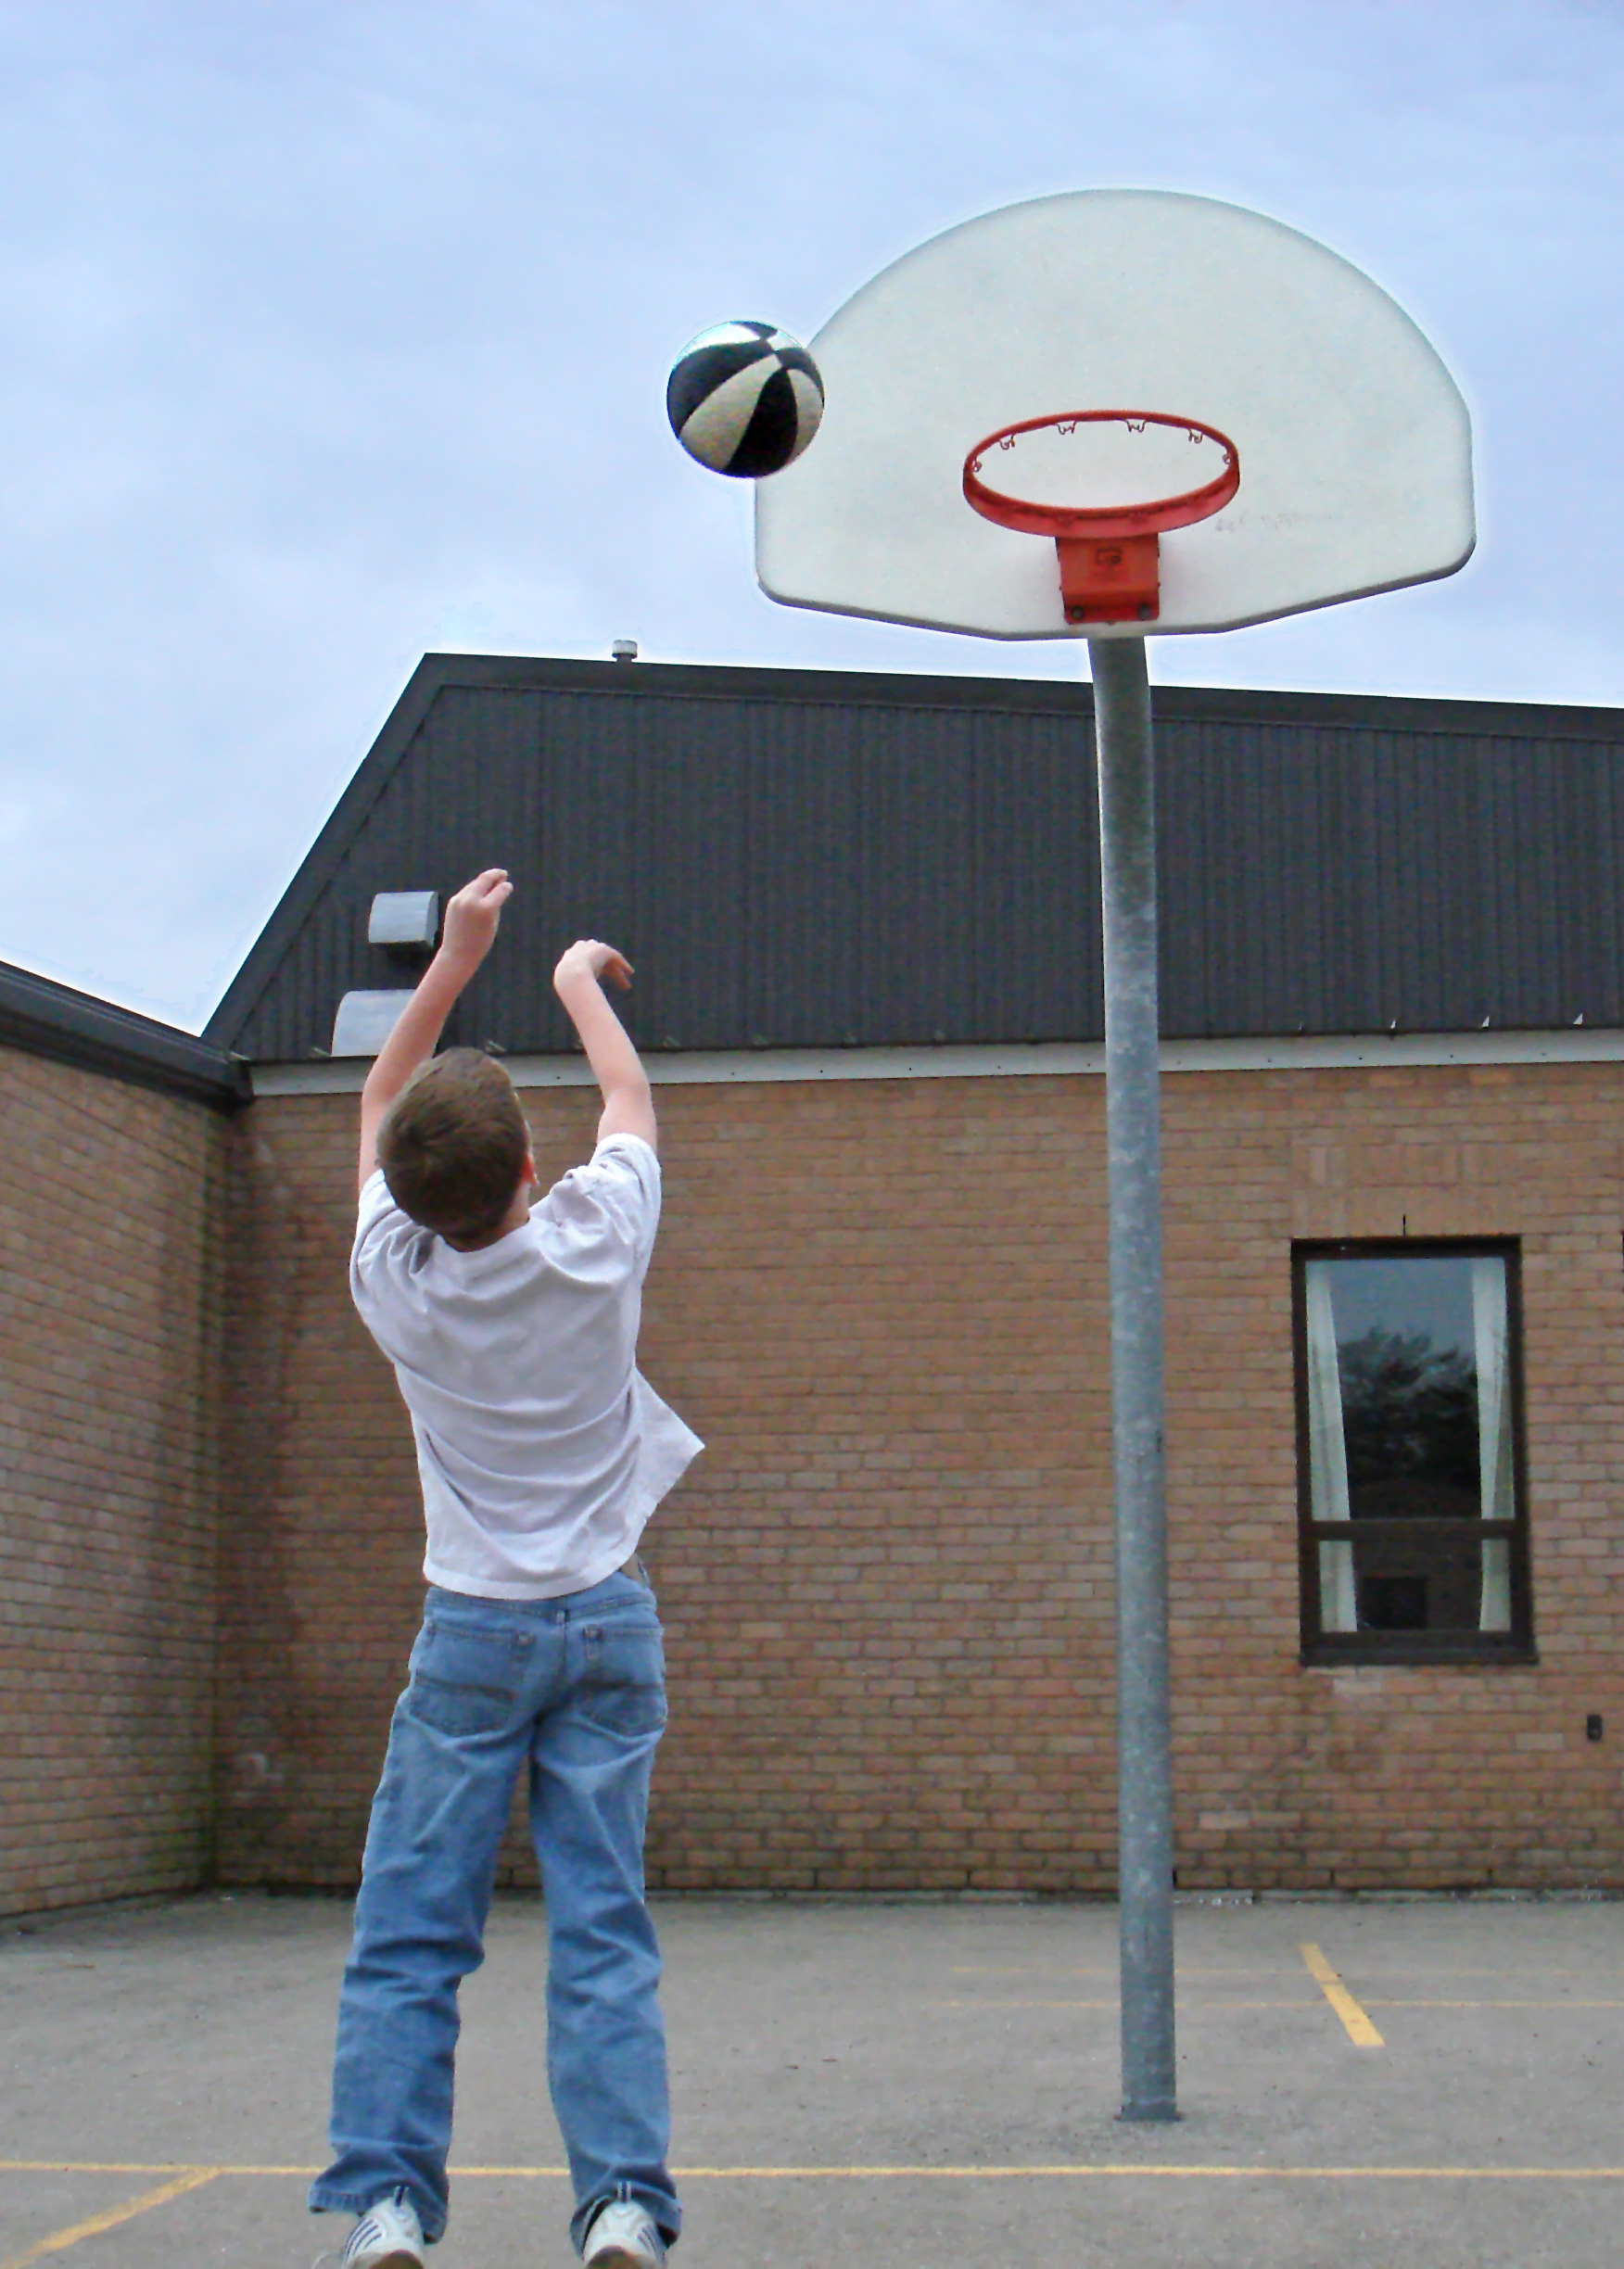 Research about basketball